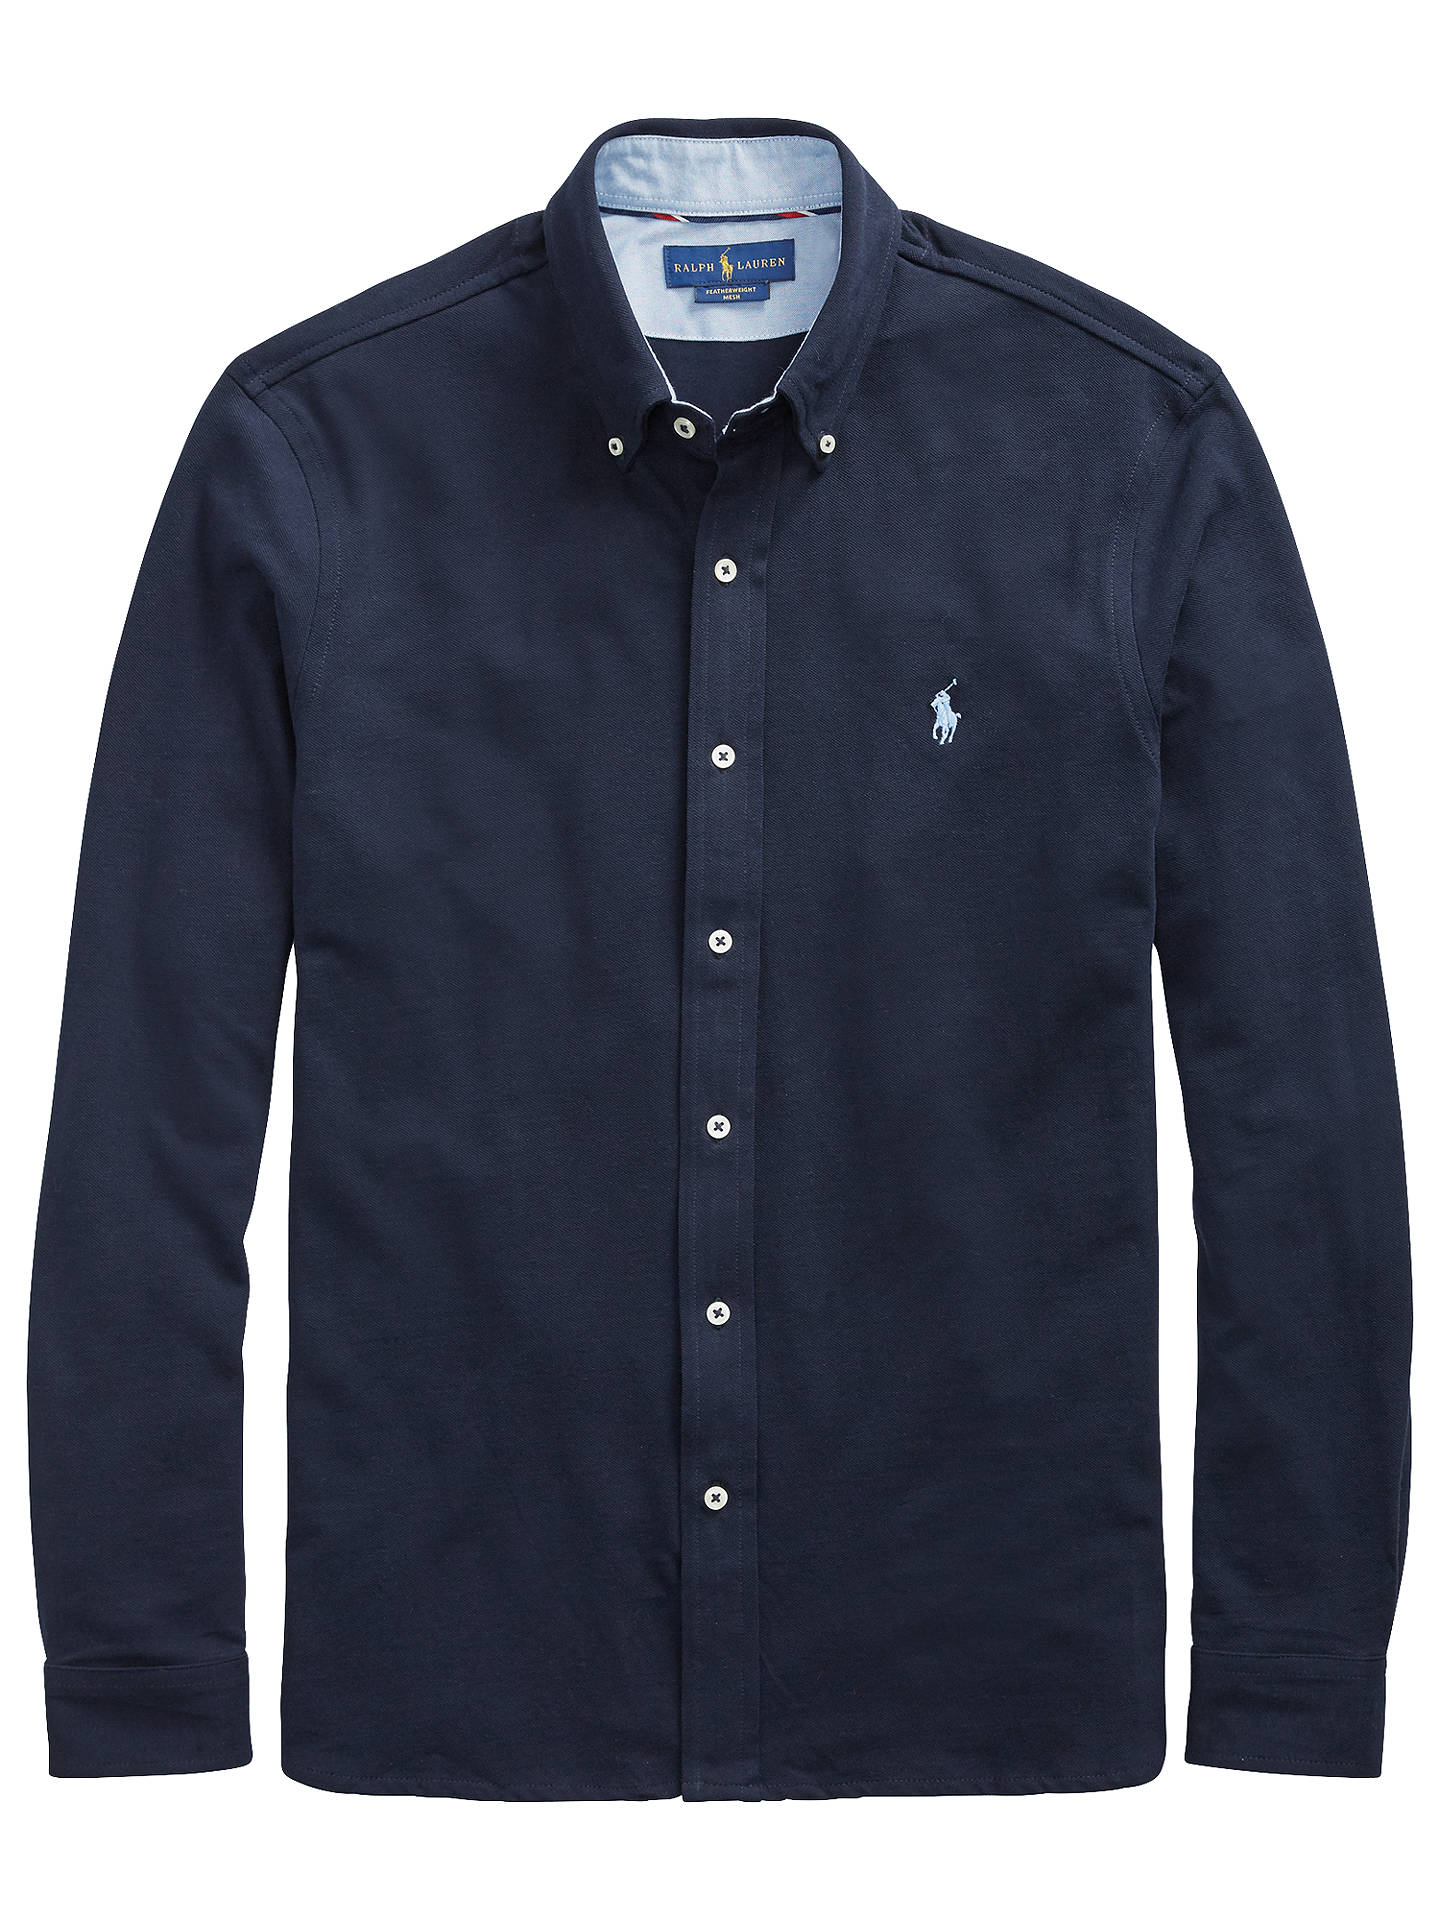 BuyPolo Ralph Lauren Long Sleeve Button Down Shirt, Aviator Navy, S Online at johnlewis.com